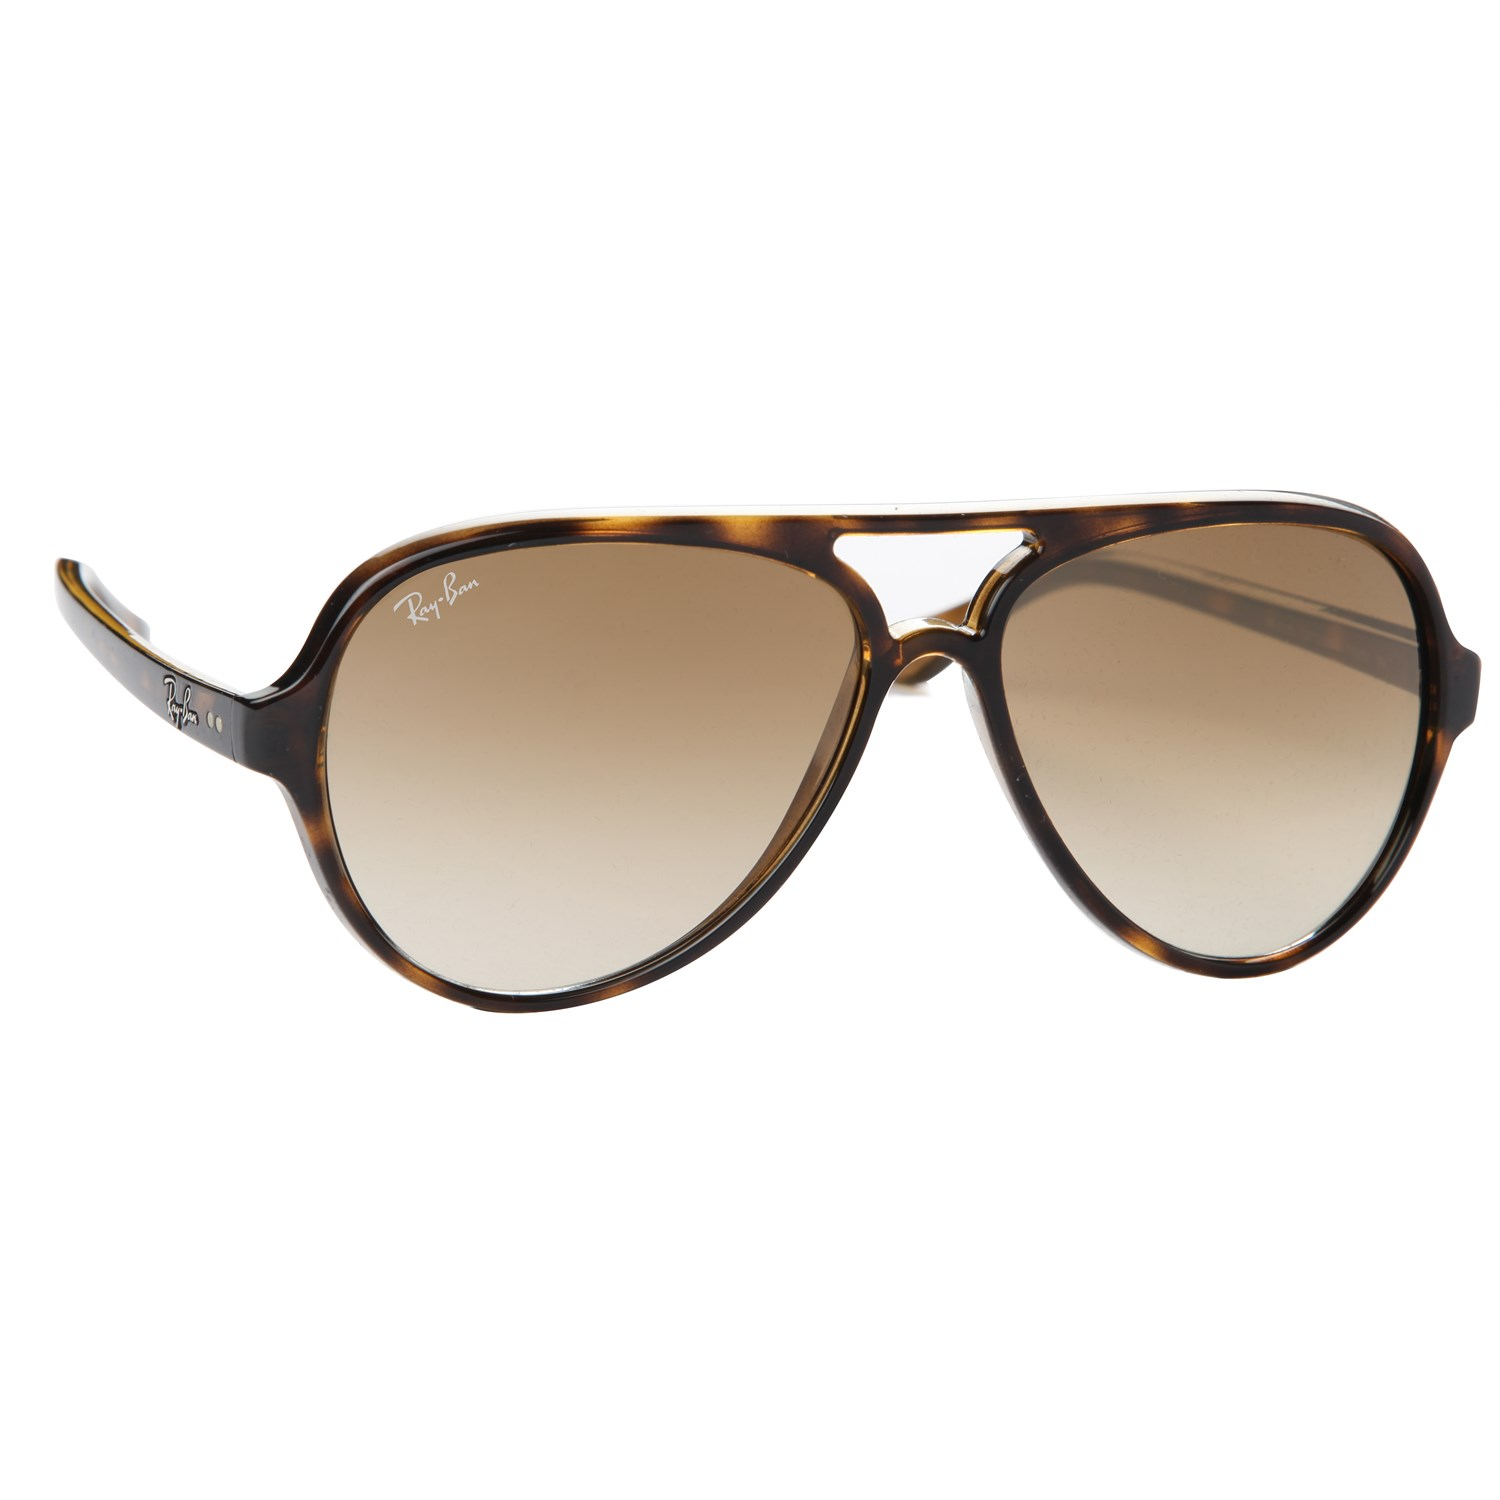 ray ban sunglasses aviator tortoise  ray ban rb 4125 cats 5000 sunglasses light havana brown gradient high back